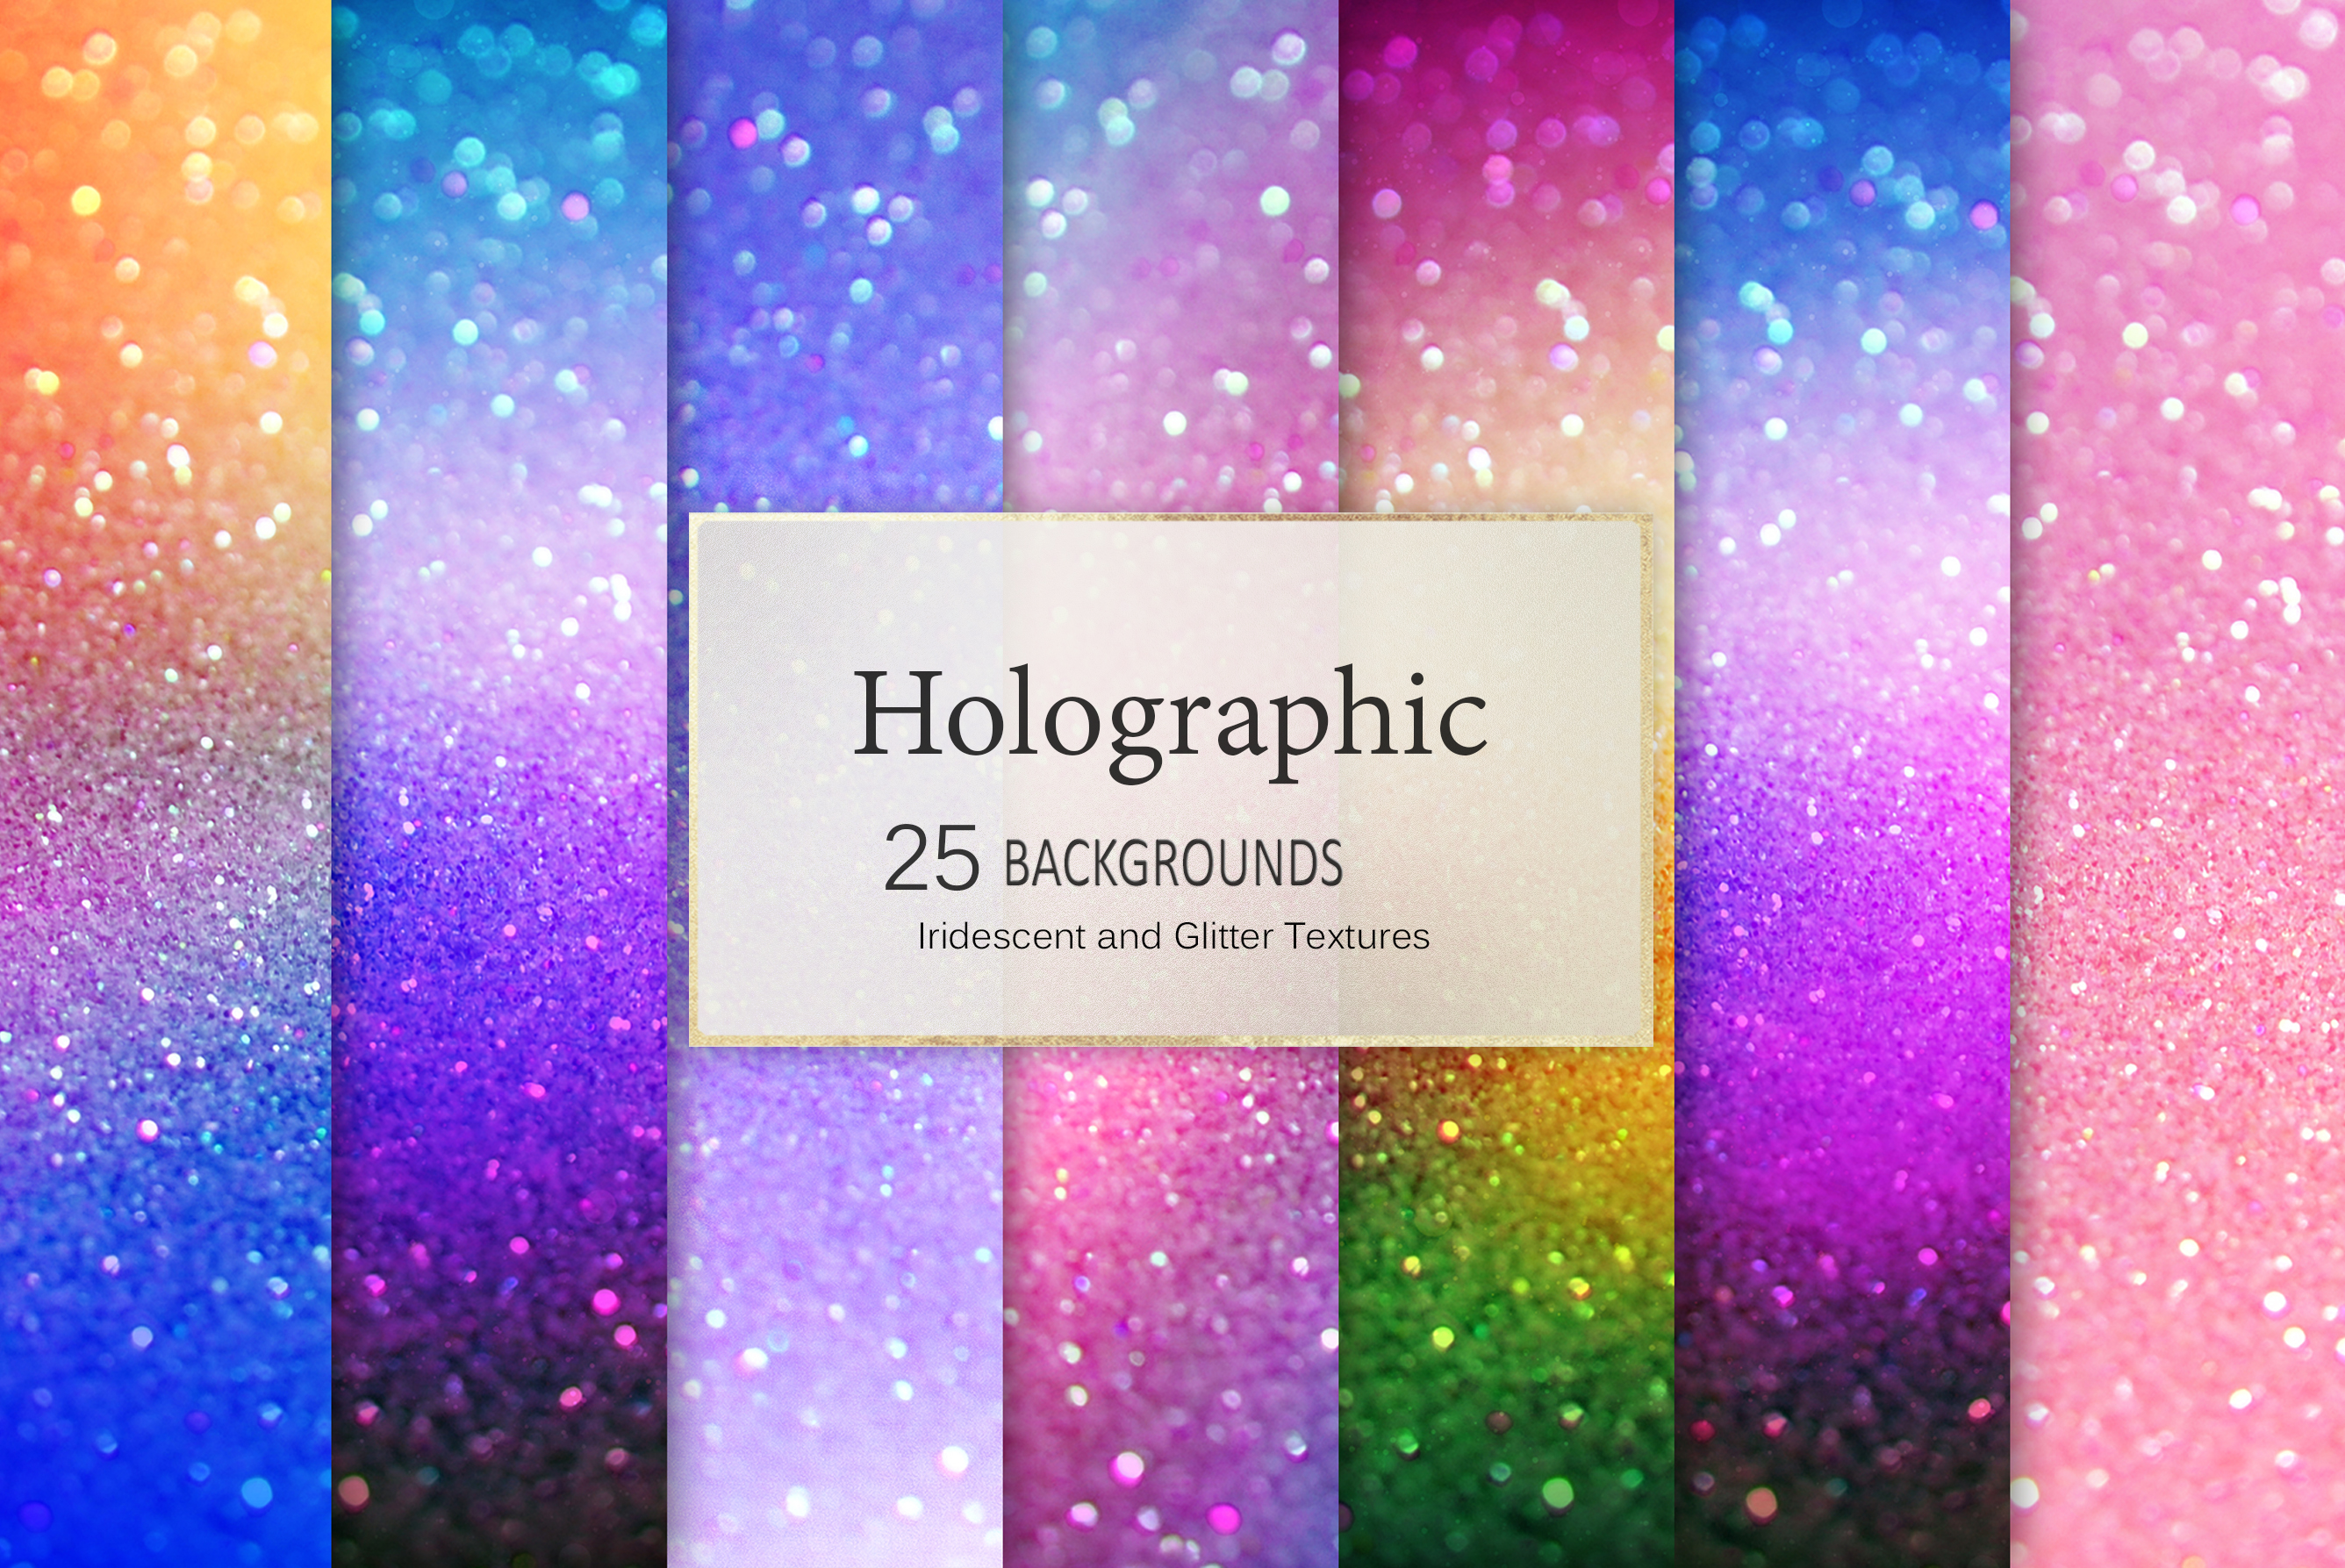 Iridescent 95 Glitter Textures Holographic Backgrounds example image 12